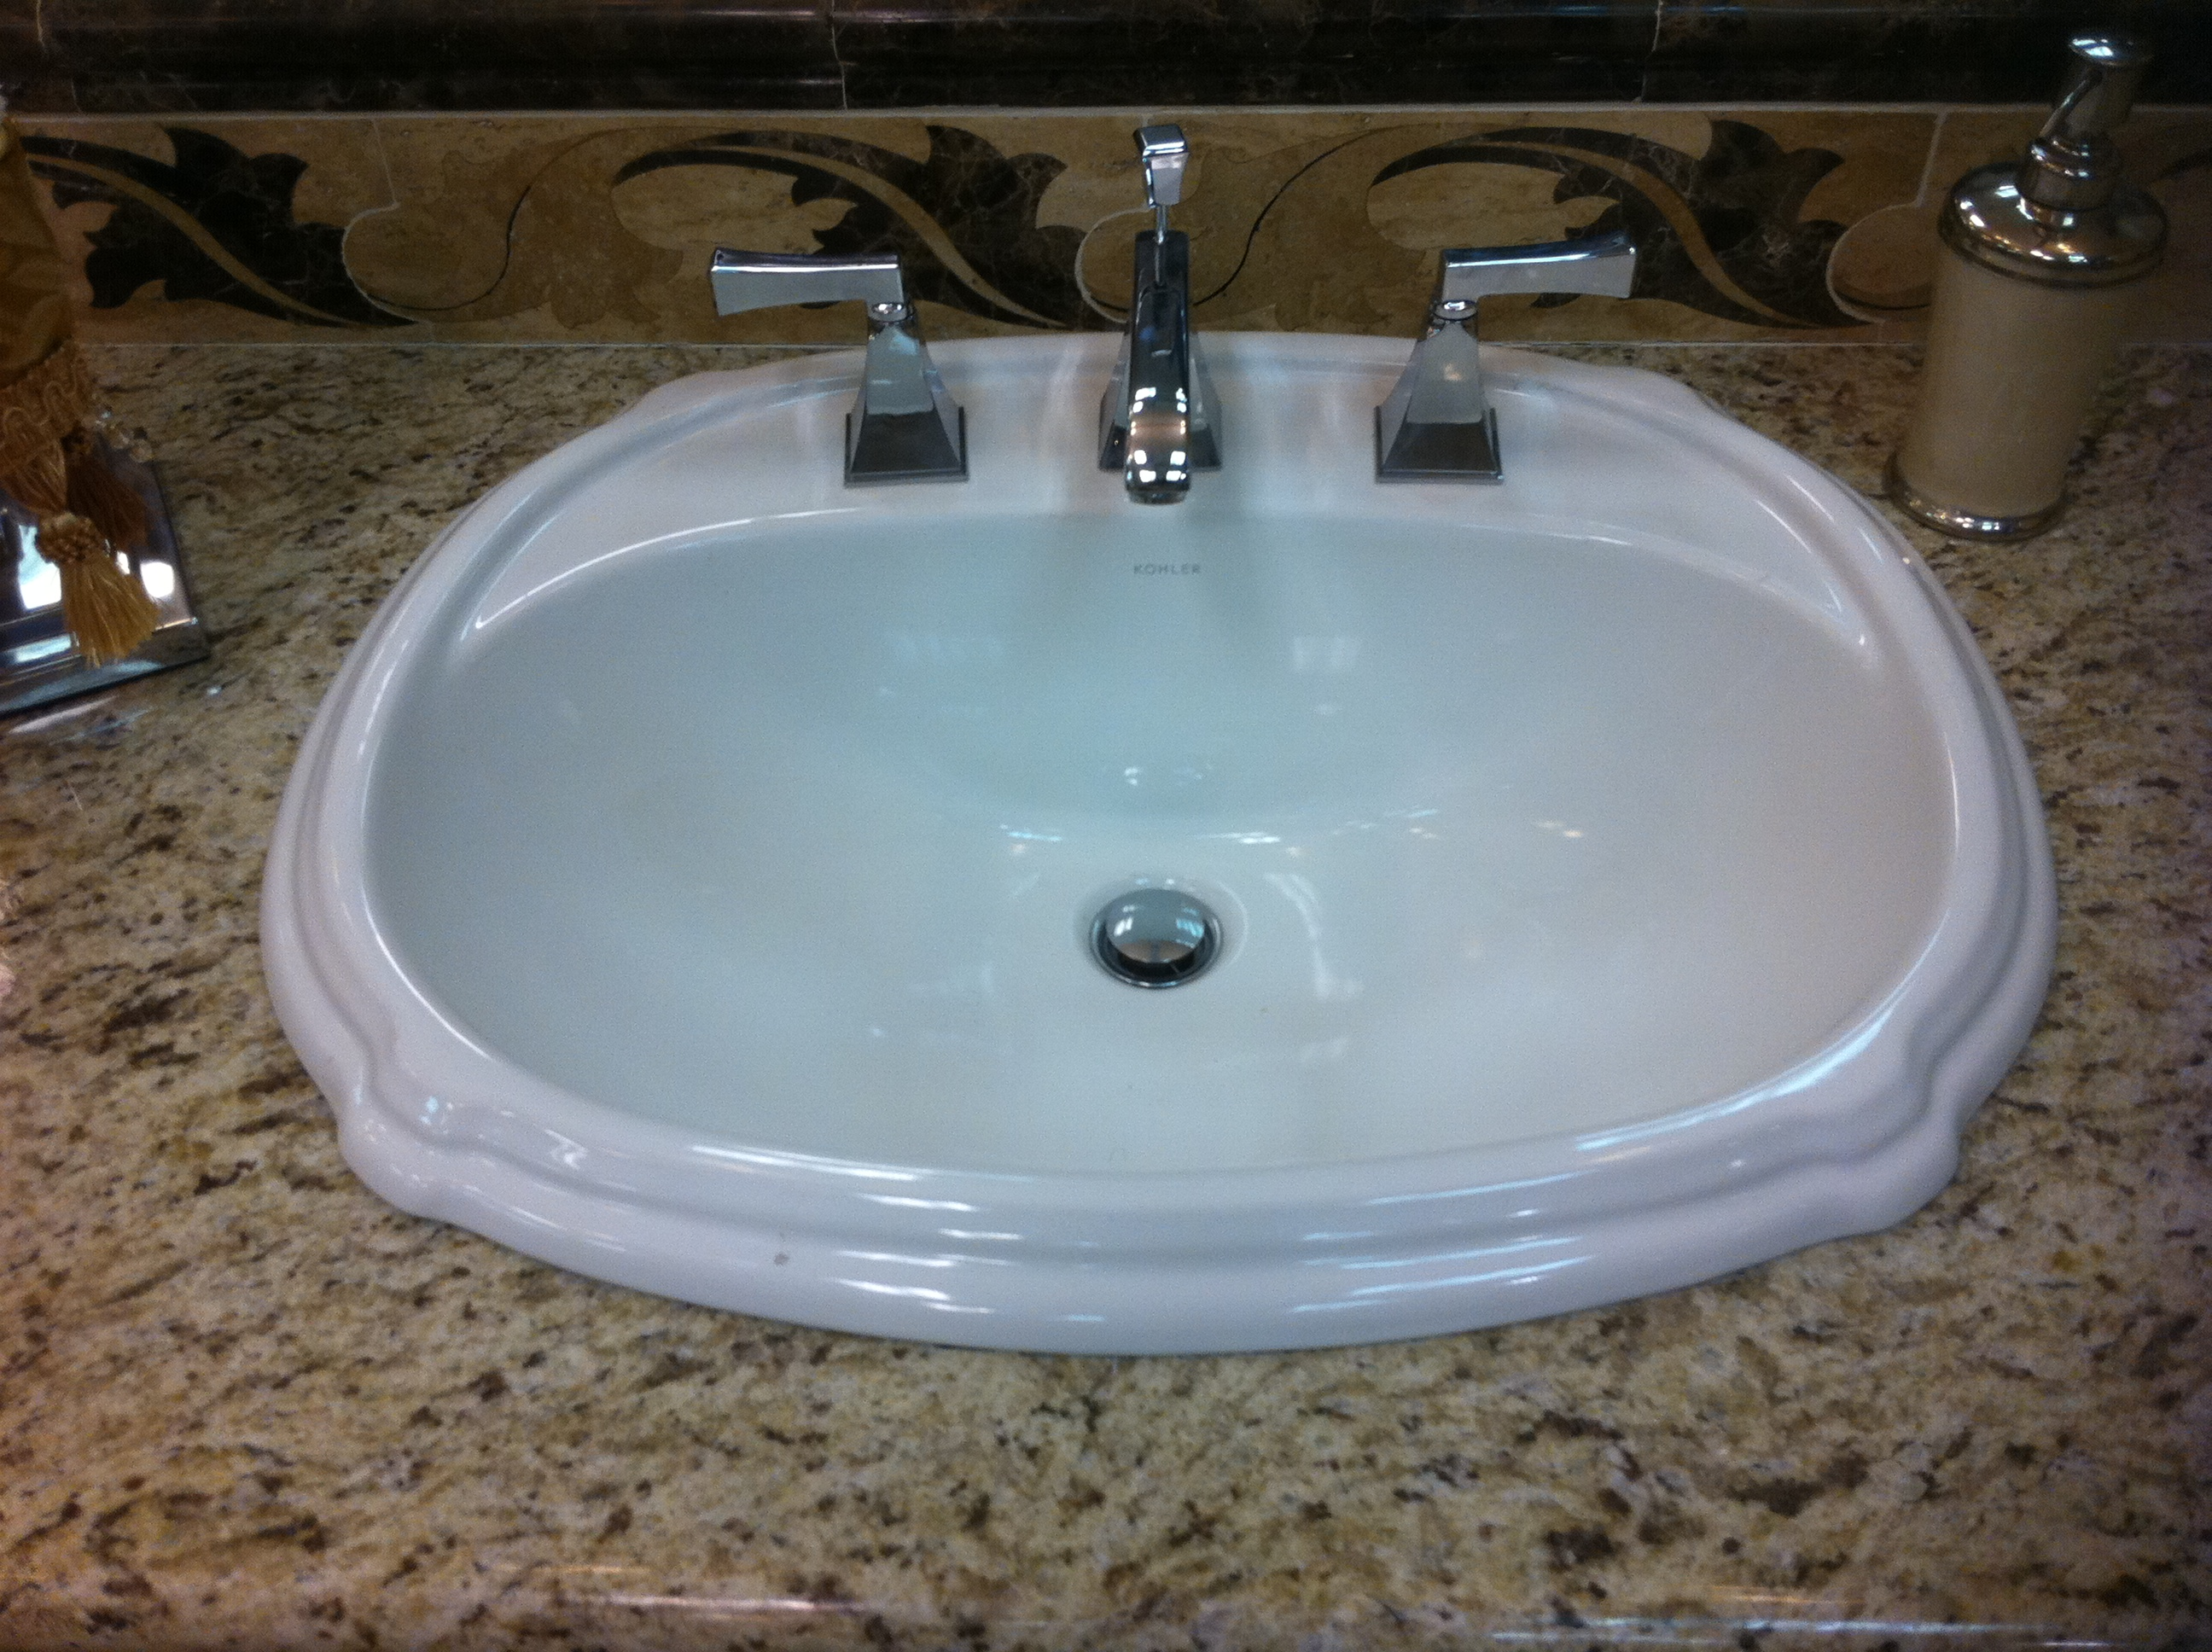 New Shine Bathtub Refinishing 225 S Lake Ave Ste 300, Pasadena, CA ...